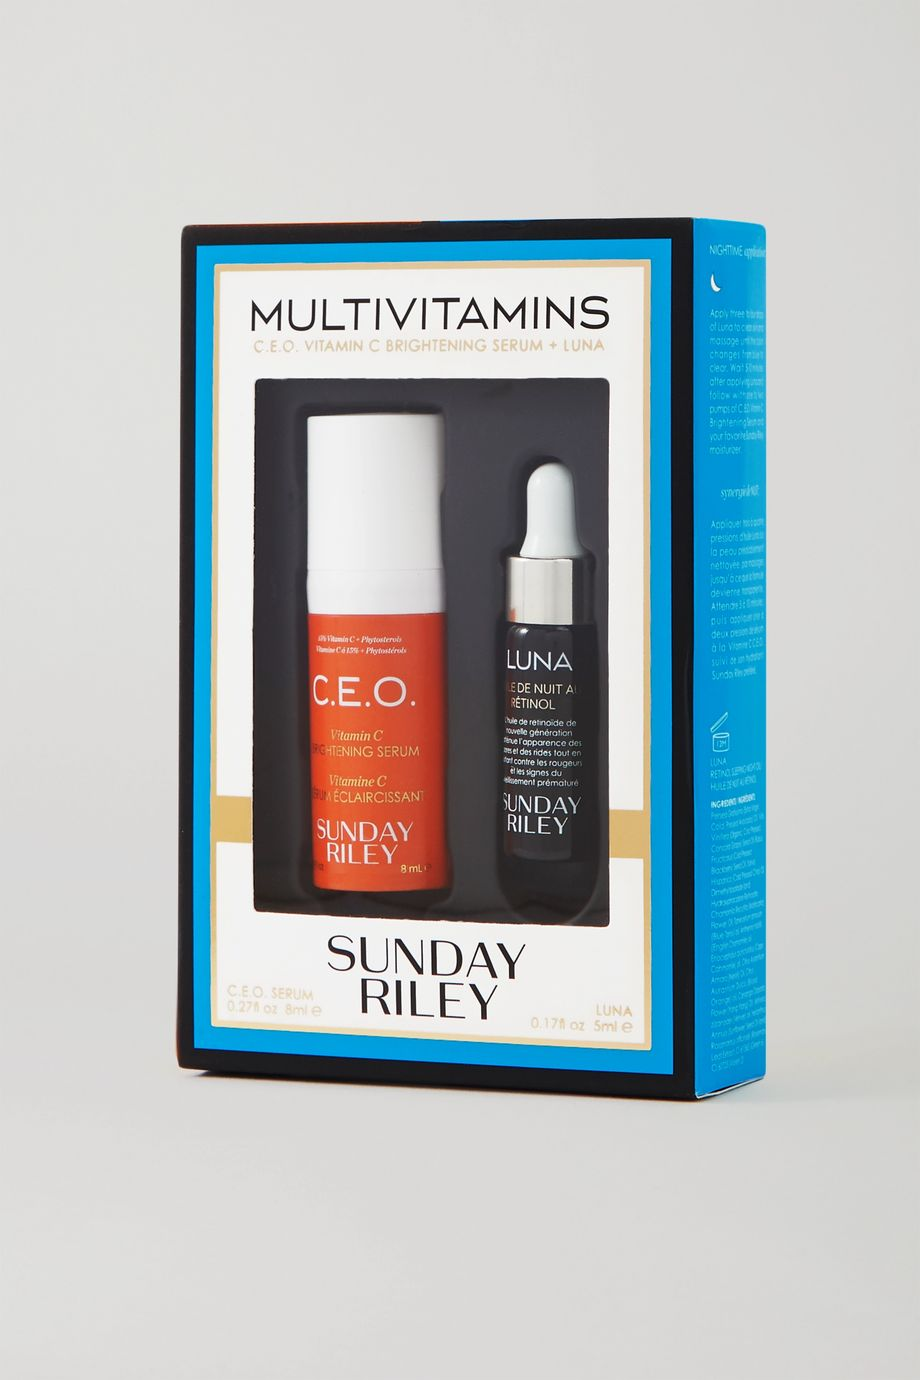 Sunday Riley Multivitamins Set